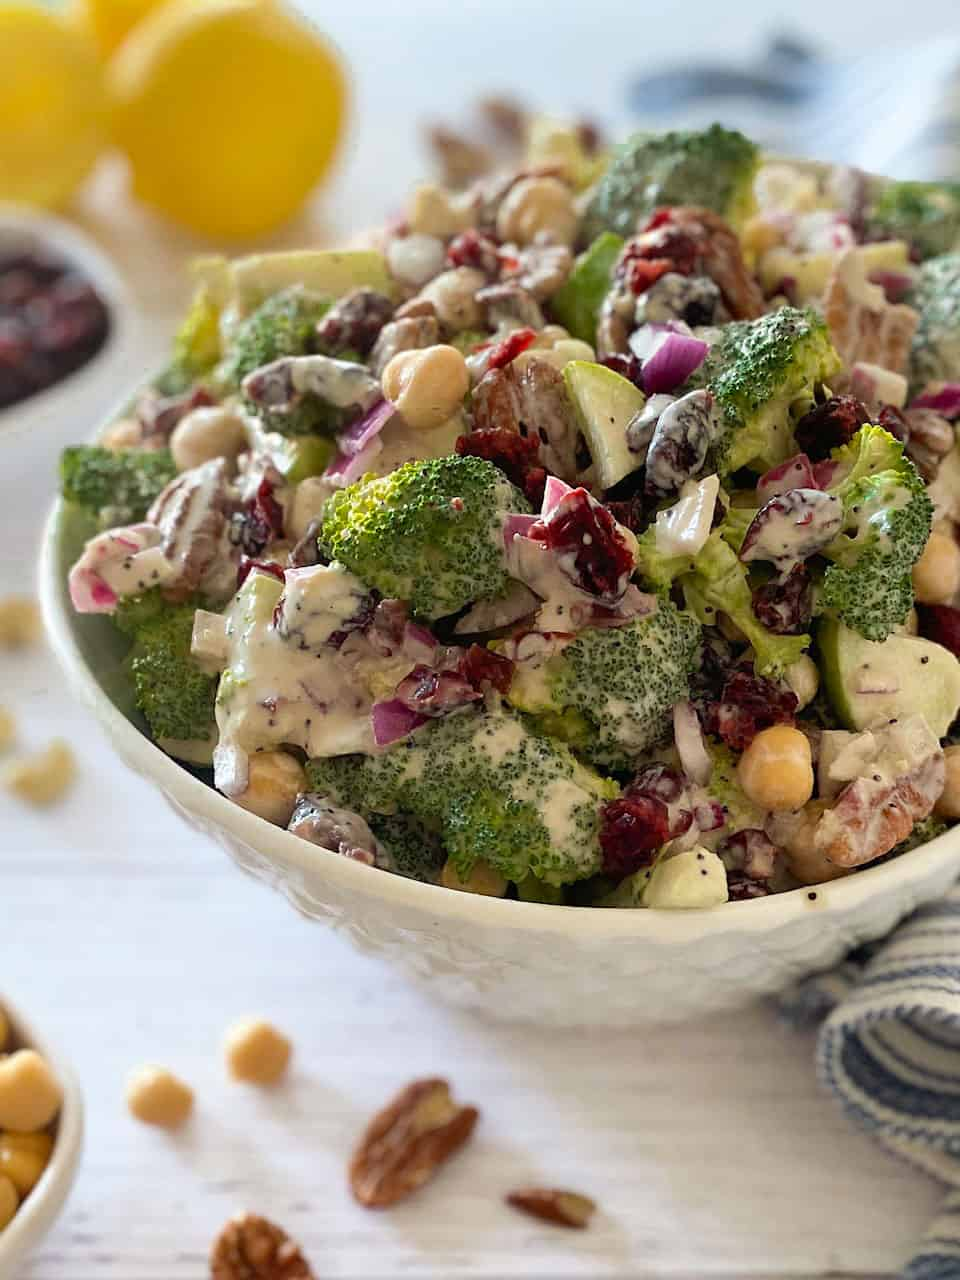 Side view of cranberry broccoli salad in white serving bowl with lemons in the background.